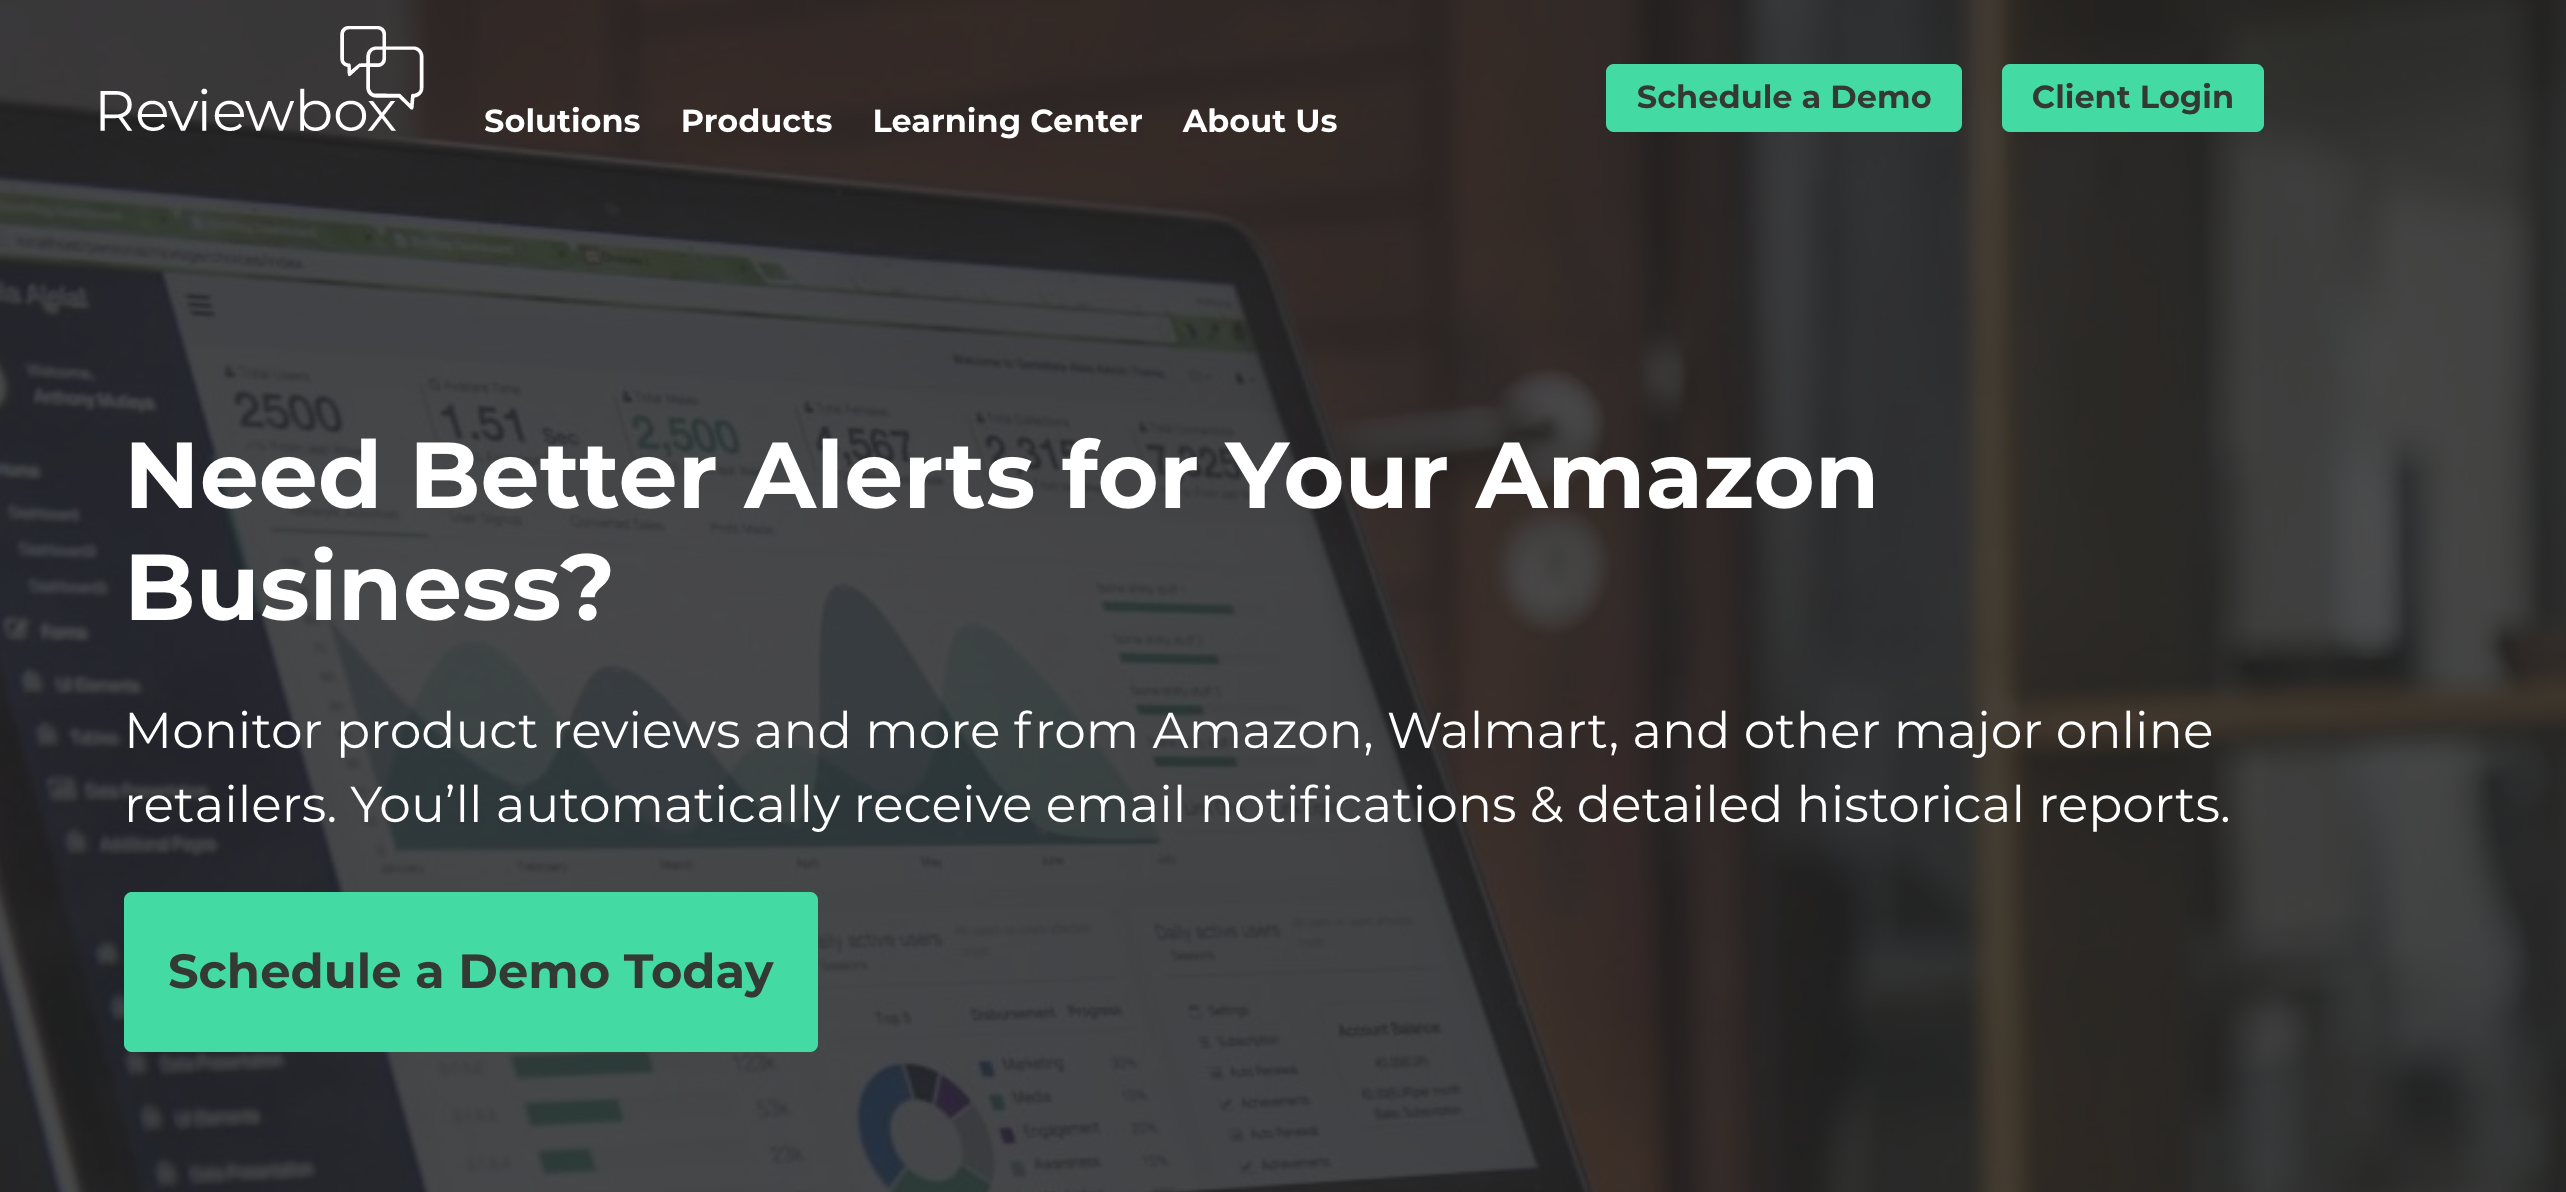 Better Alerts for Amazon - Reviewbox